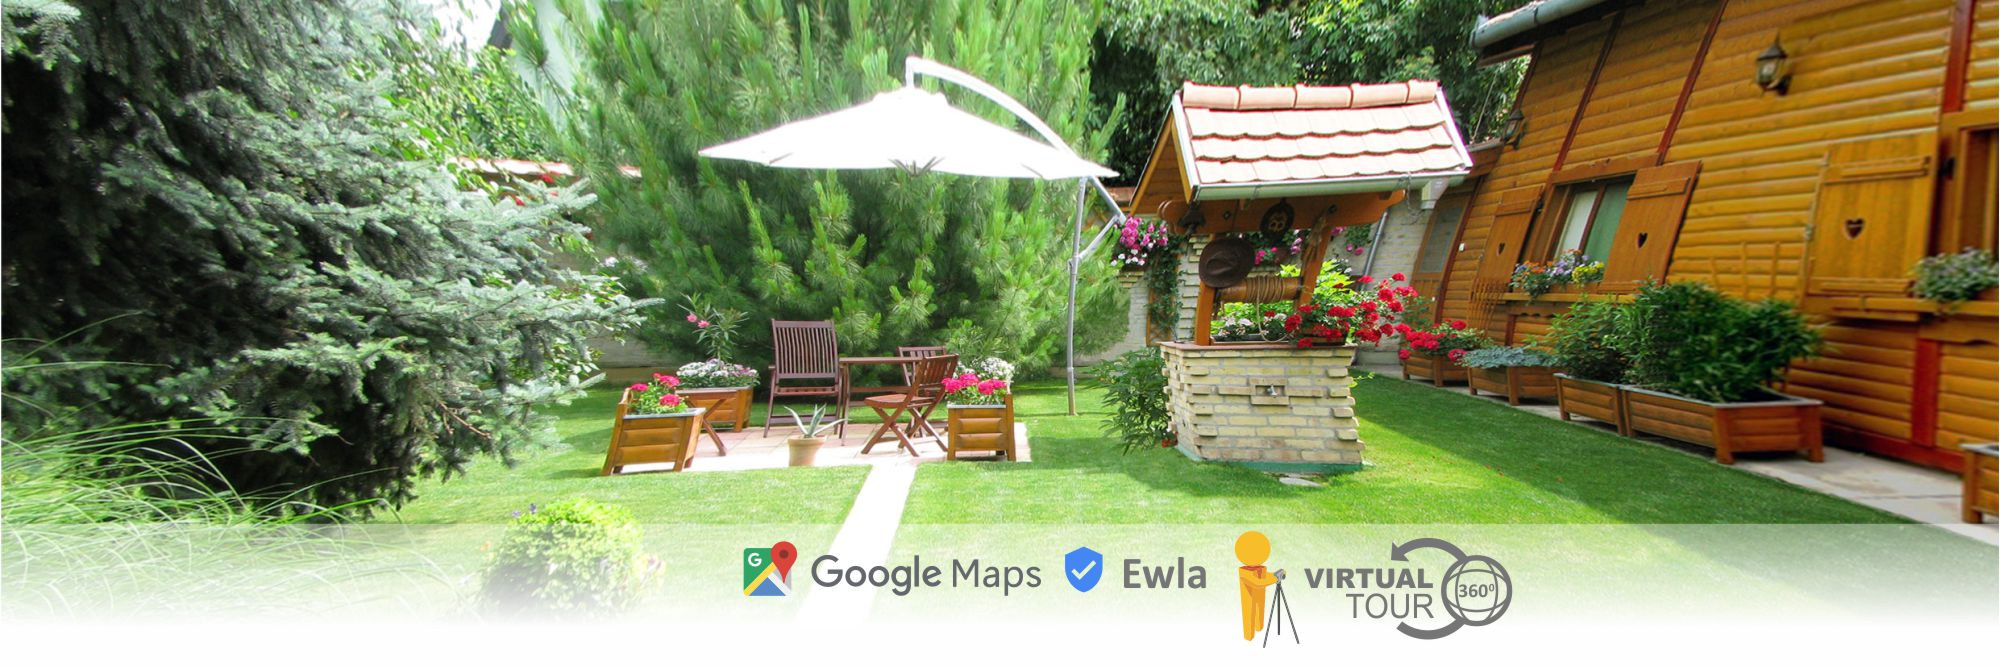 Ewla - Google Maps - 360 Virtual Tour